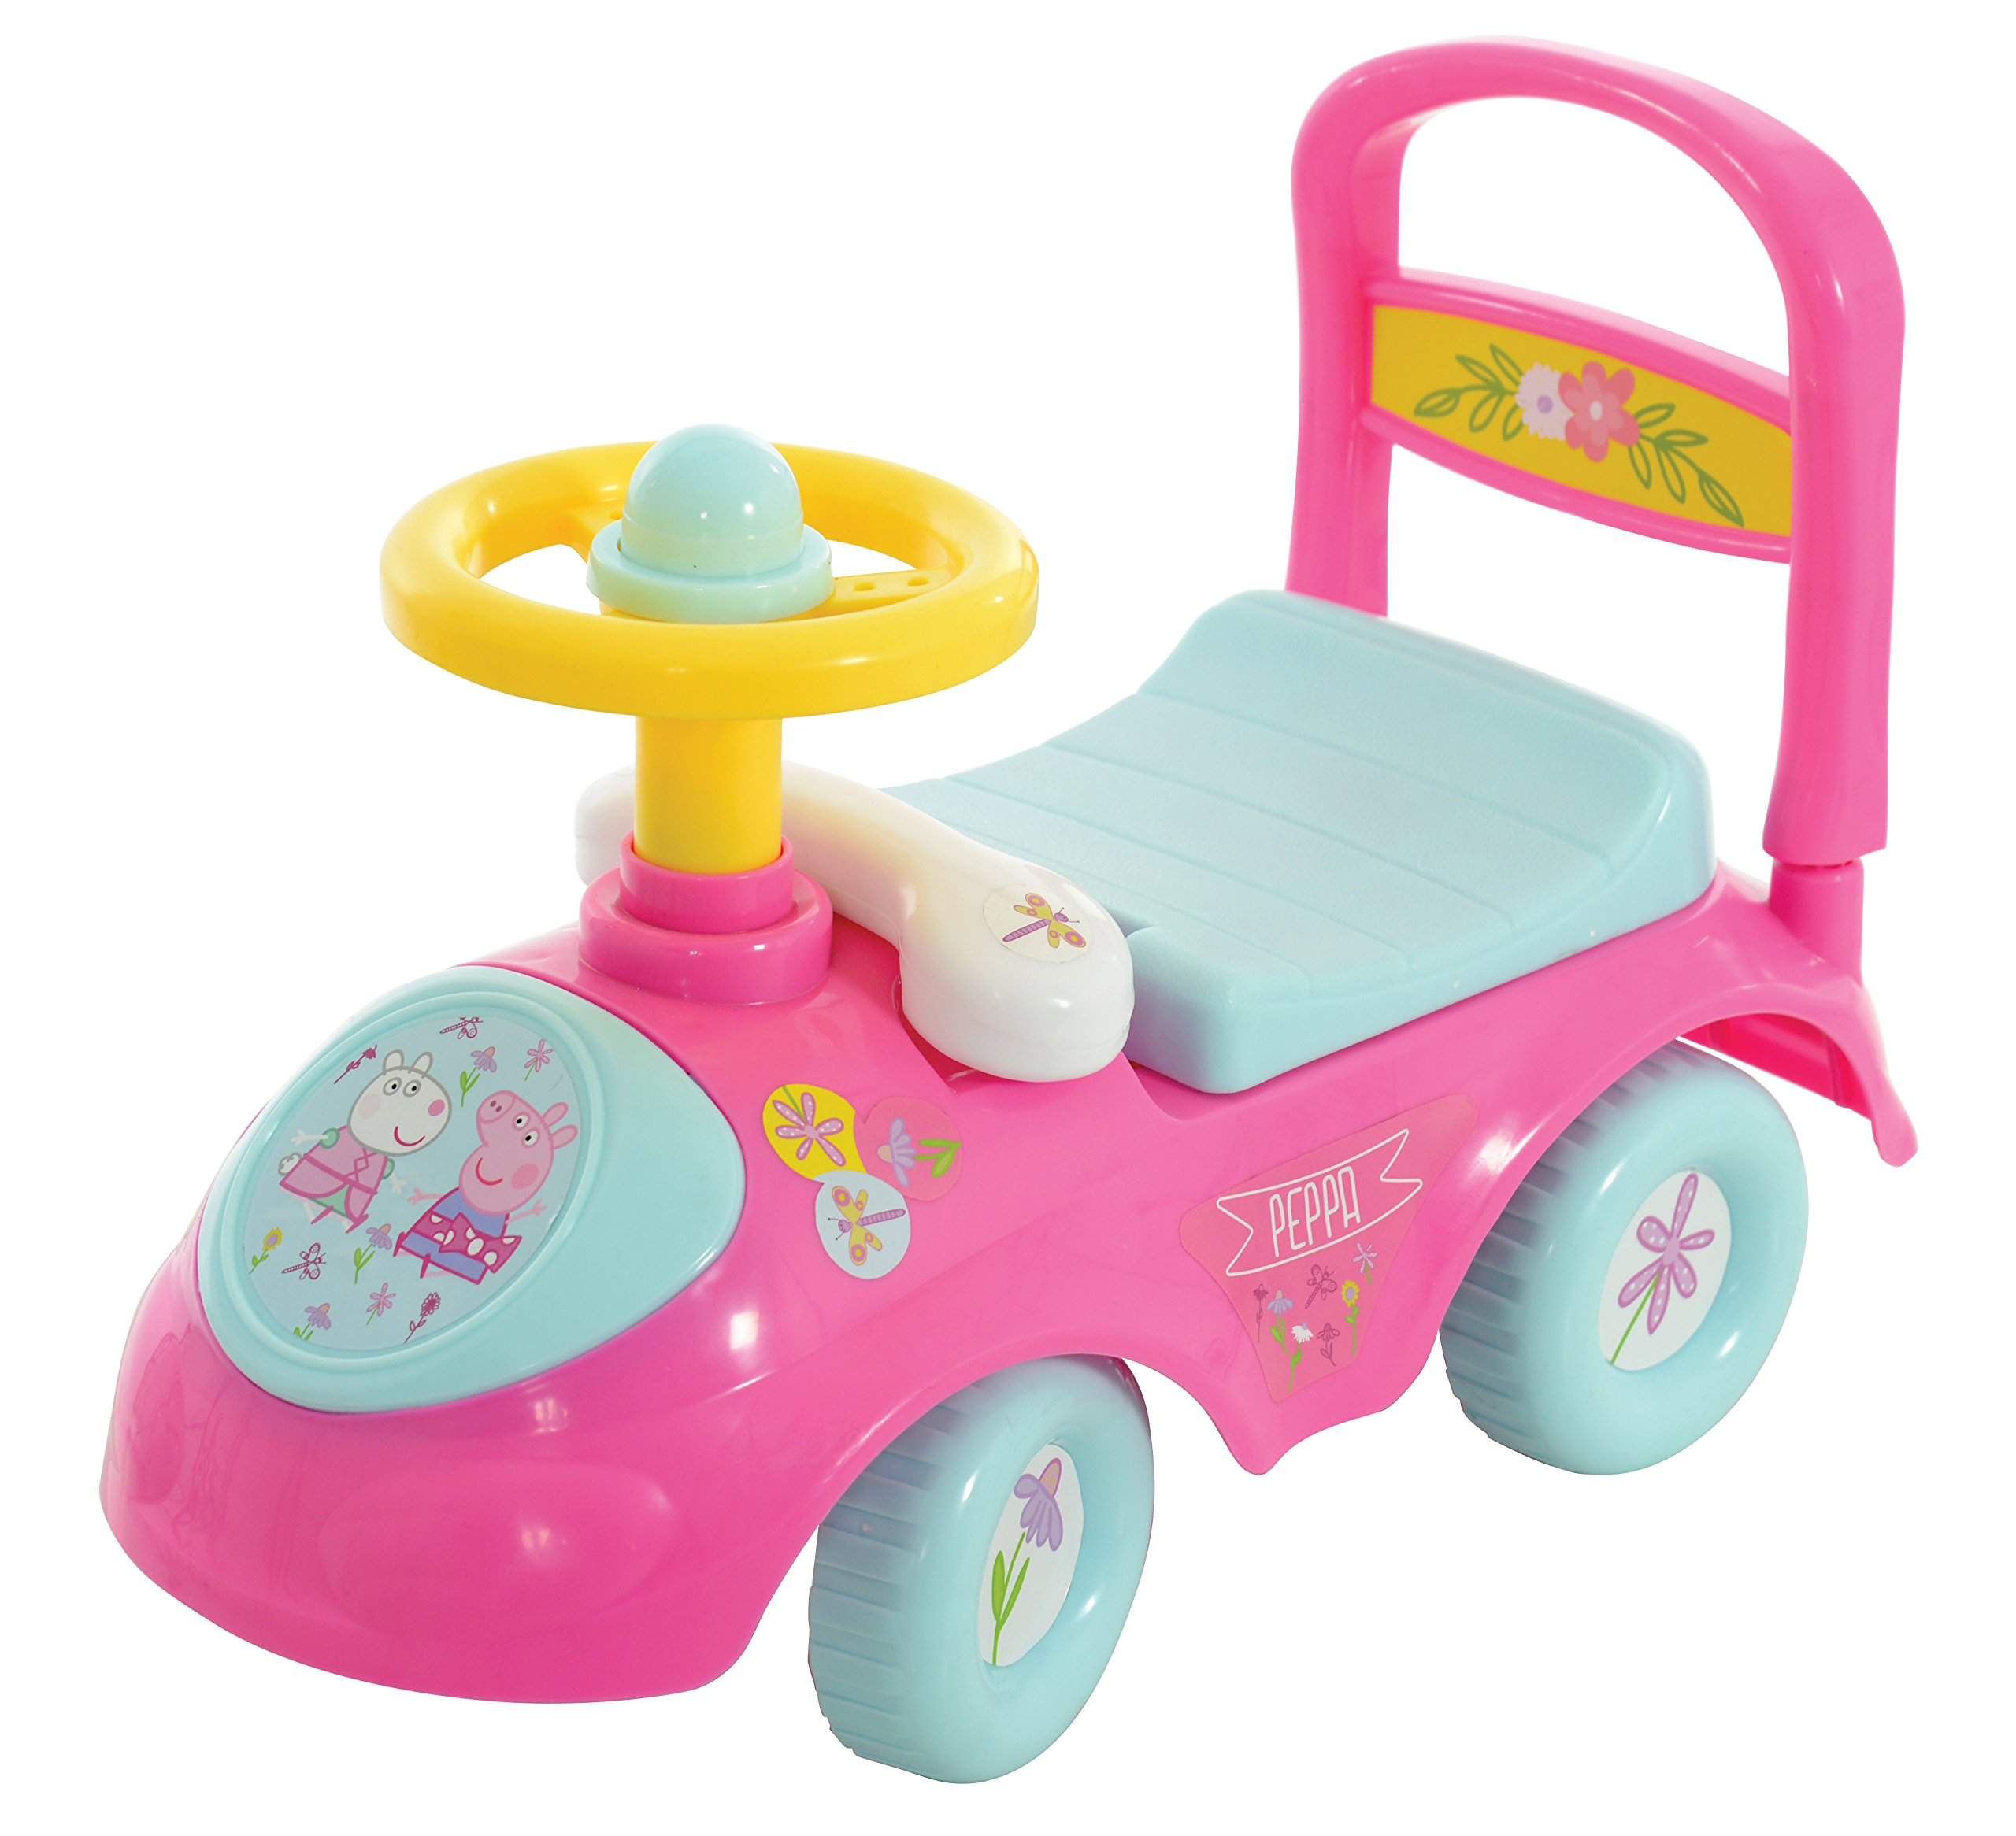 Peppa Pig My First Sit & Ride On M07195 by MV Sports